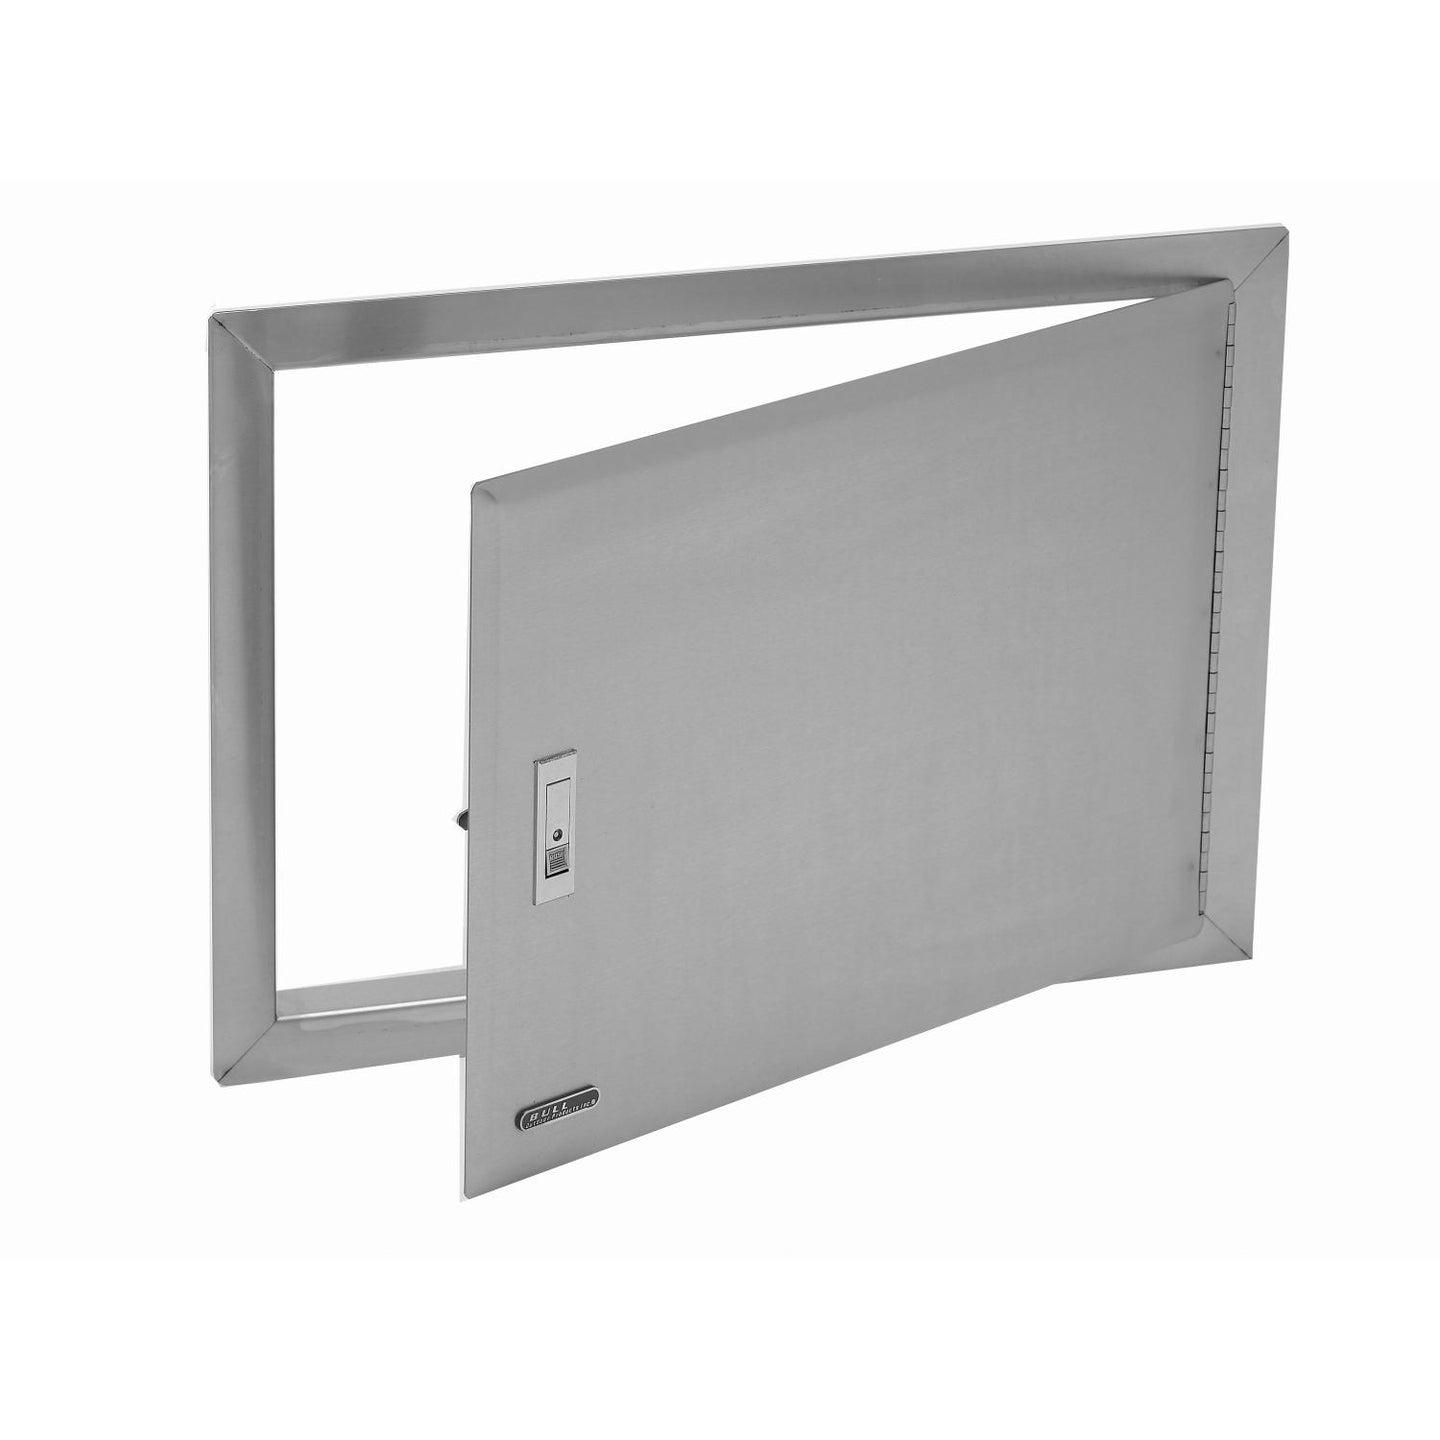 Bull 26-Stainless Steel Single Access Door - Horizontal - 89970